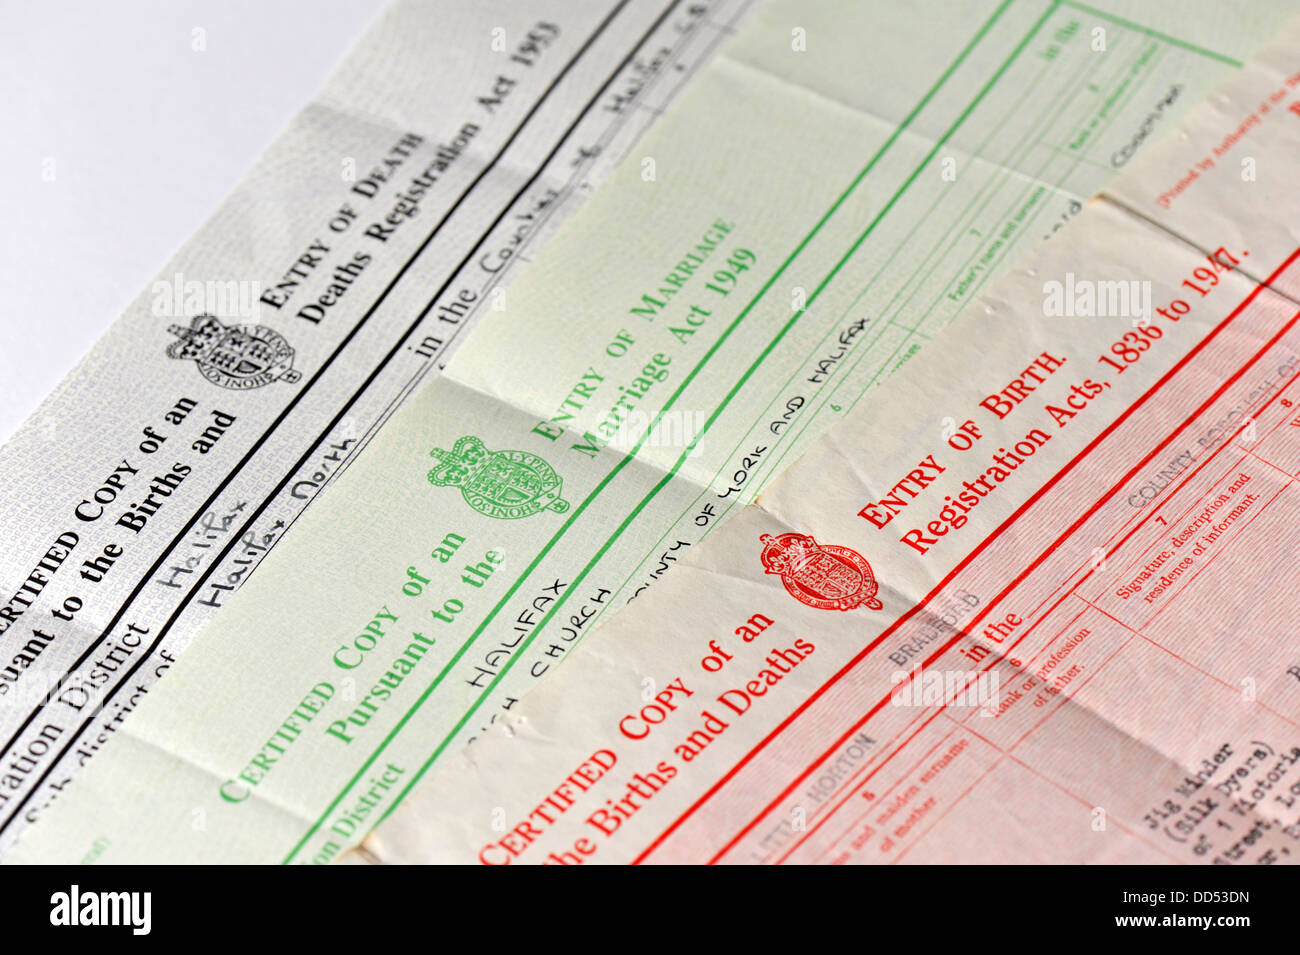 Birth/Marriage/Death Certificates Stock Photo